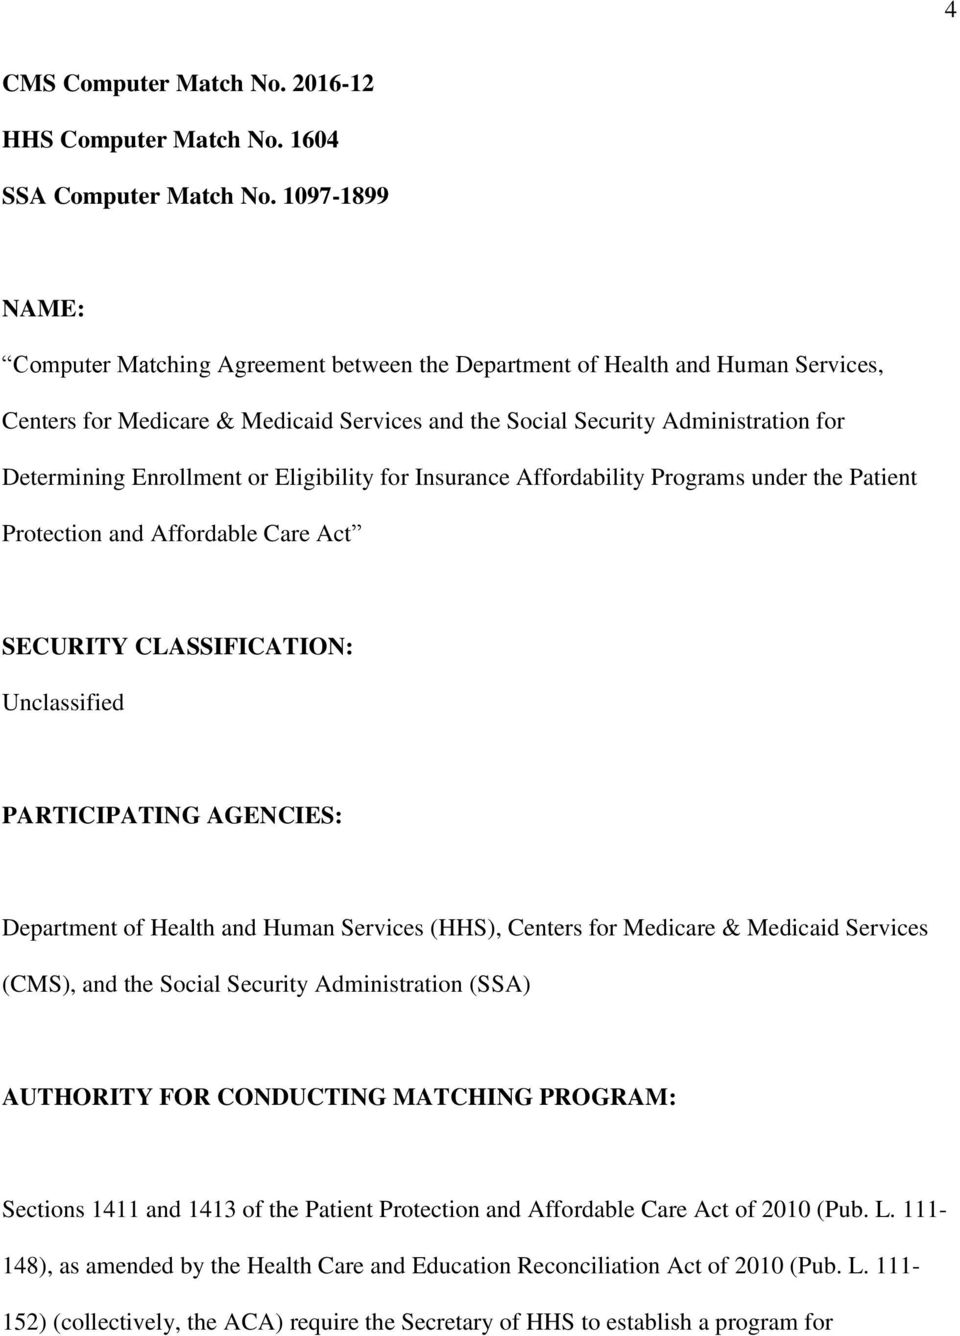 Enrollment or Eligibility for Insurance Affordability Programs under the Patient Protection and Affordable Care Act SECURITY CLASSIFICATION: Unclassified PARTICIPATING AGENCIES: Department of Health